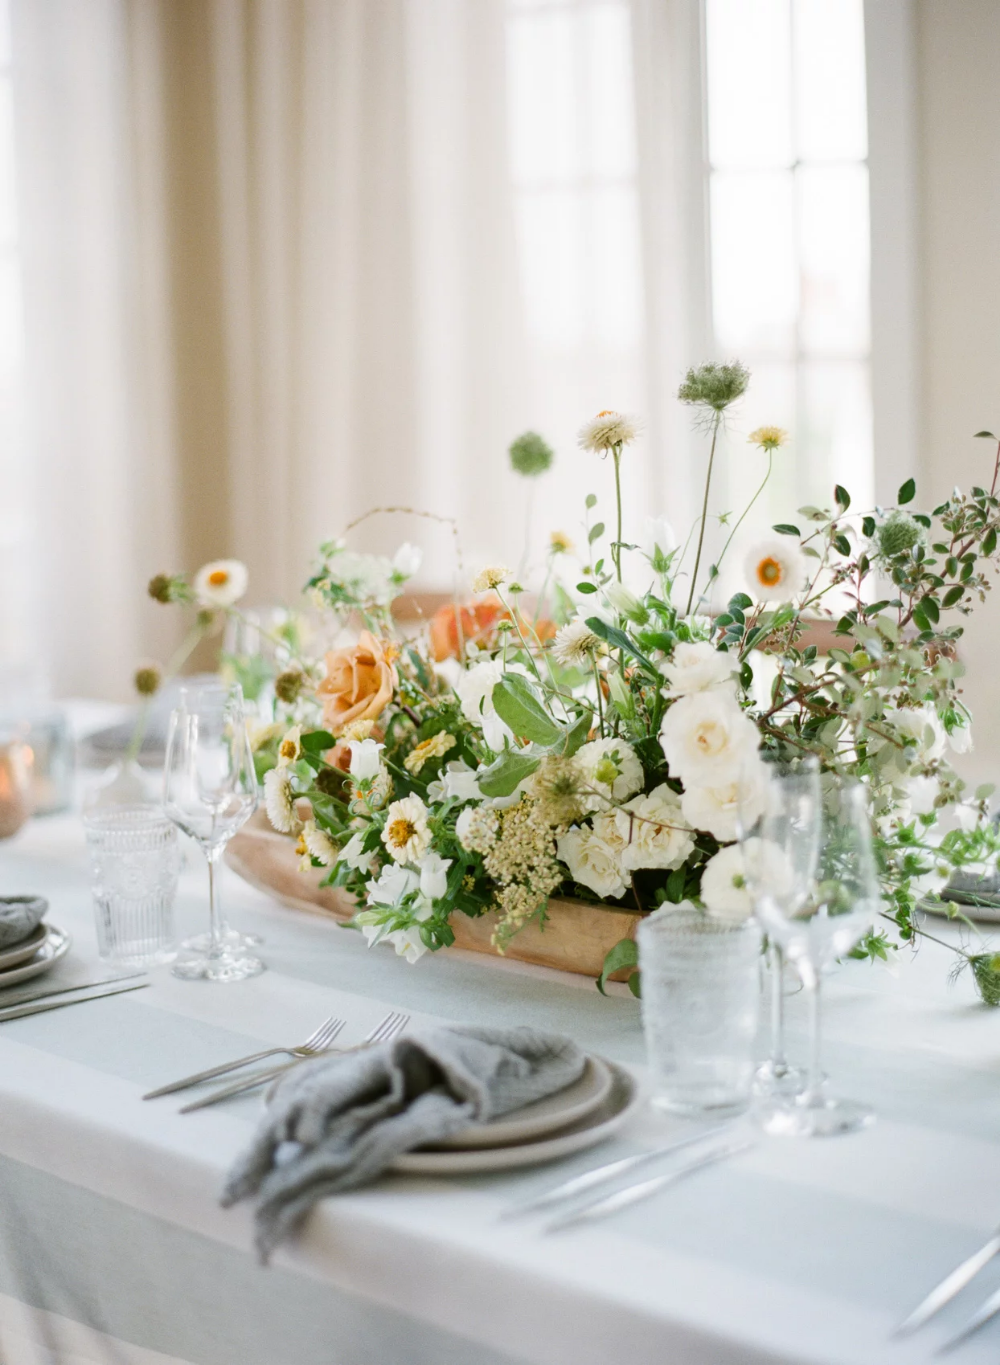 A Seaside Garden Party With Celestial Accents In Cape Cod Massachusetts In 2020 Seaside Garden Wedding Planner Course Celestial Wedding